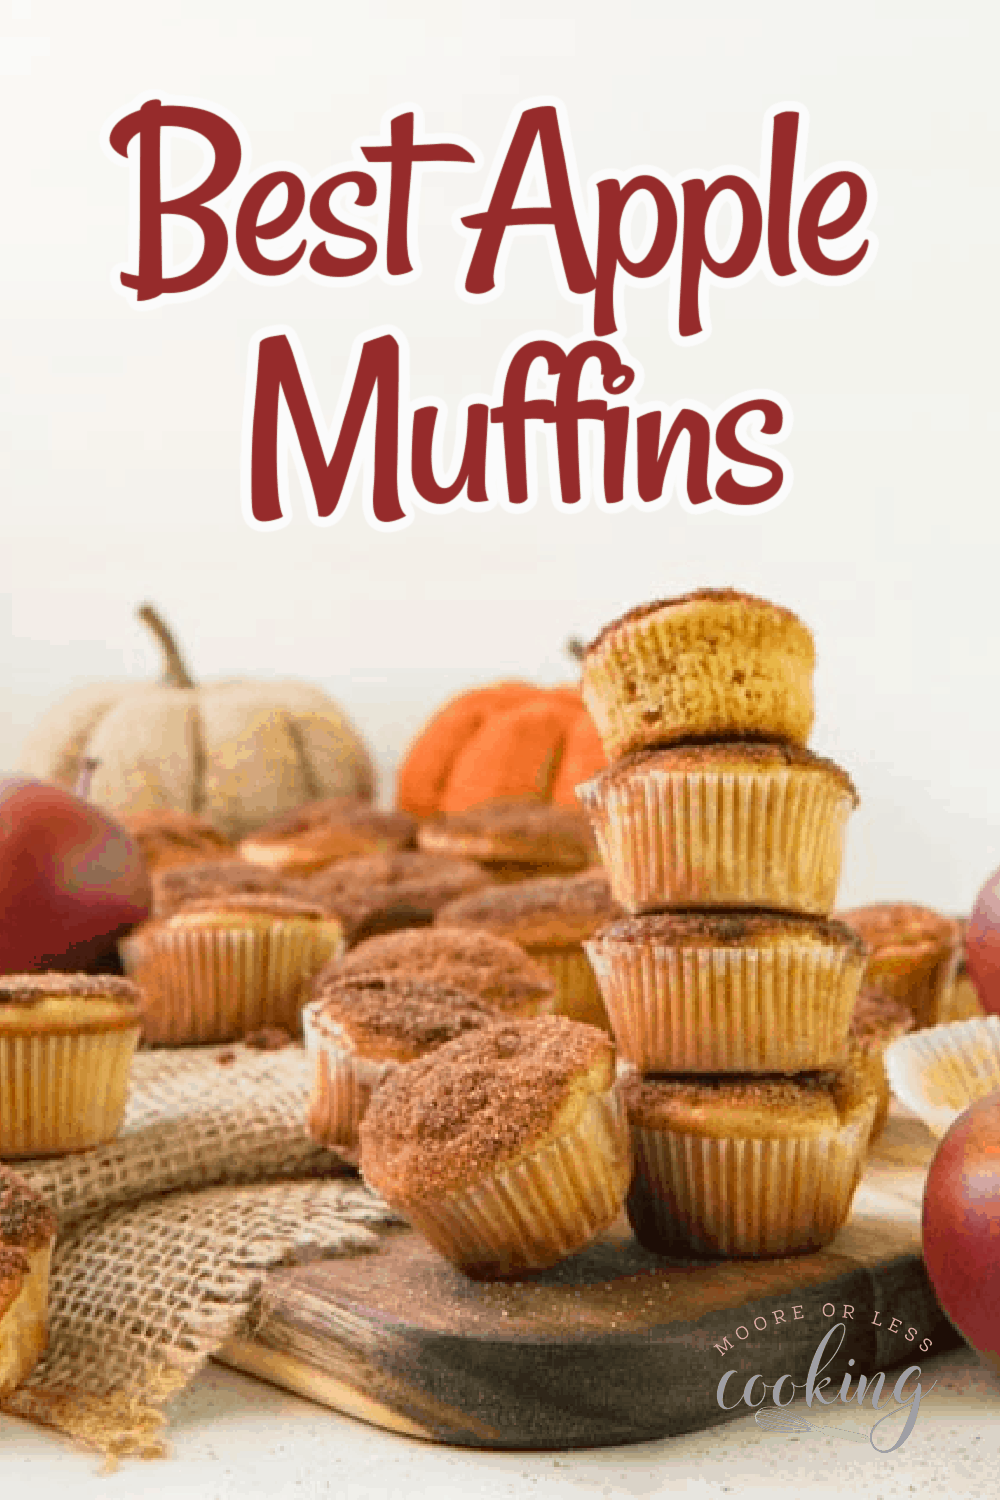 Best Apple Muffins